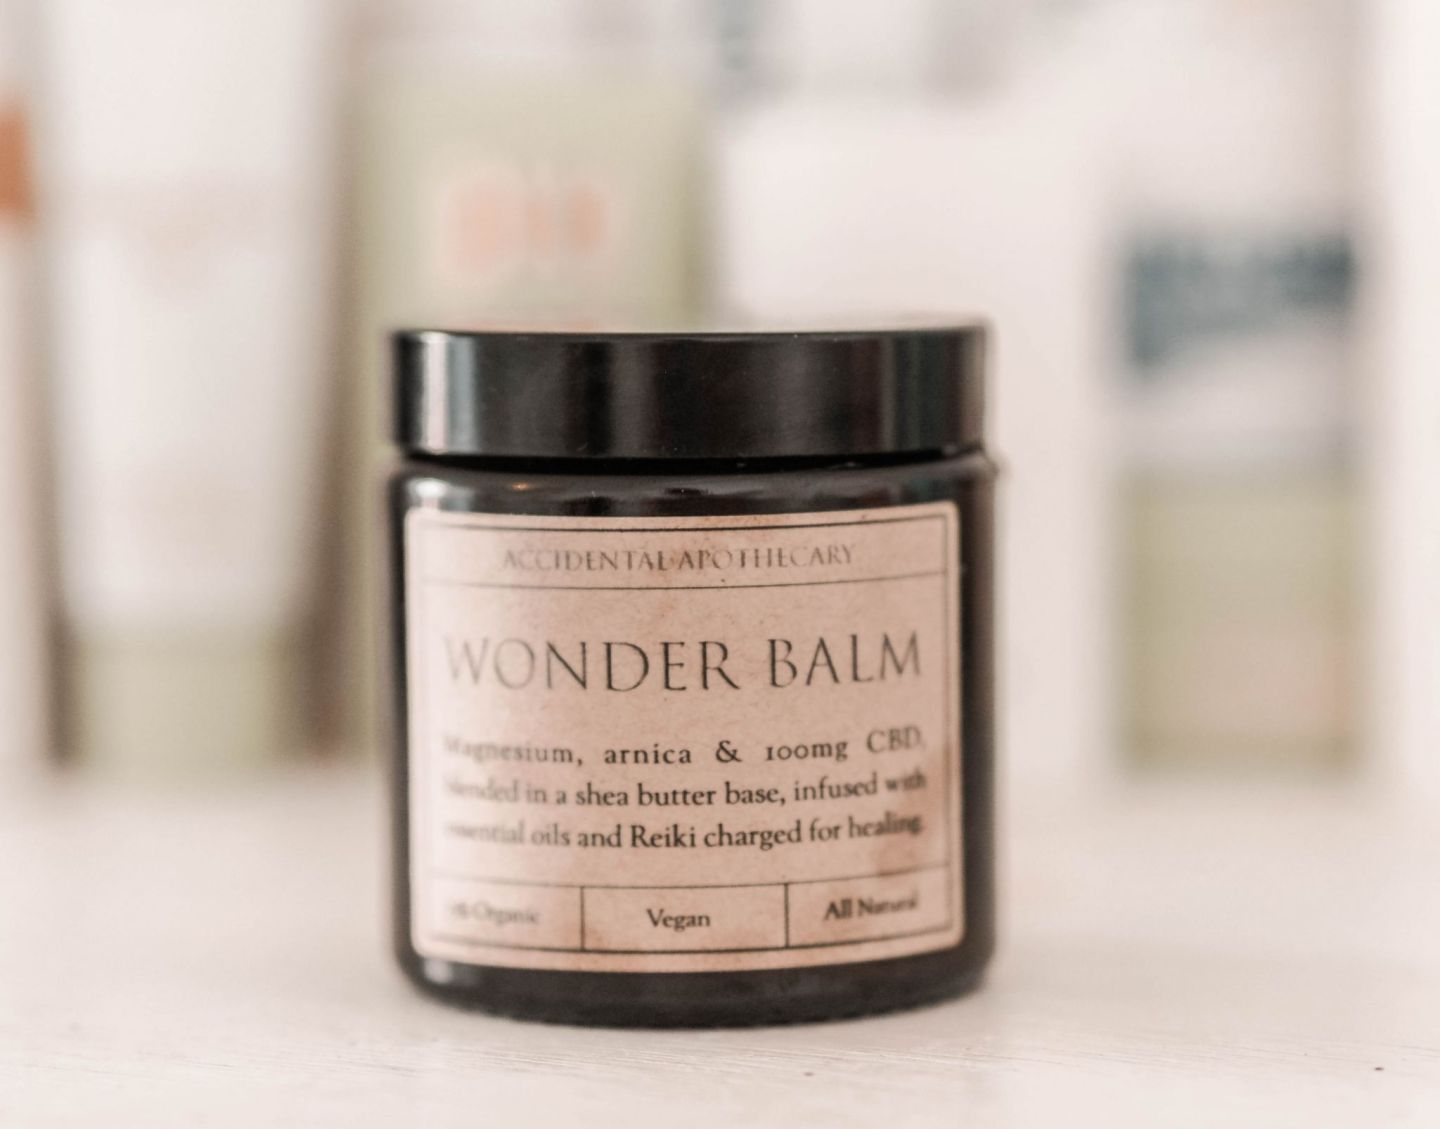 wonderbalm accidental apothecary arnica magnesium pain relief